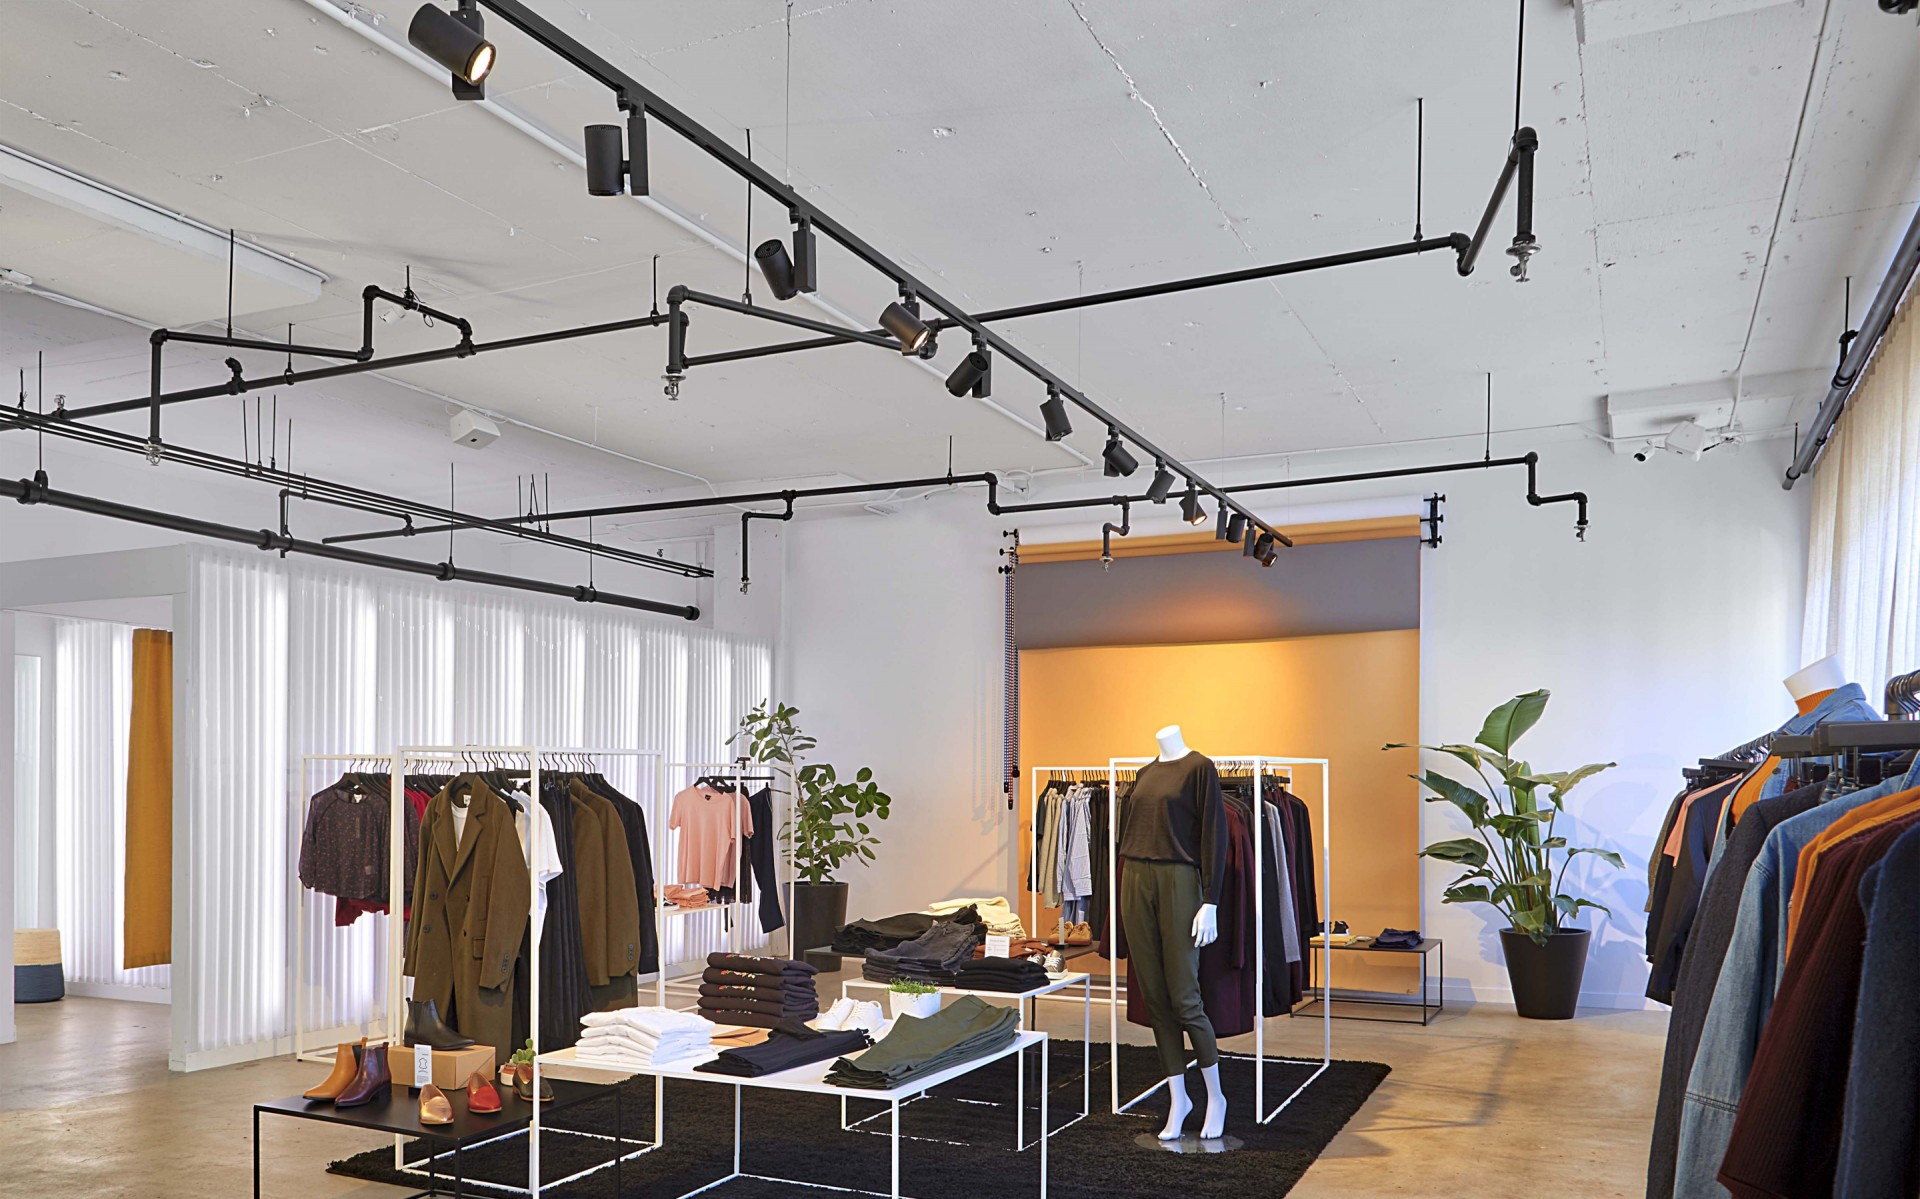 The new 2,500 square-foot location can be found in Montreal's trendy Mile End neighborhood.